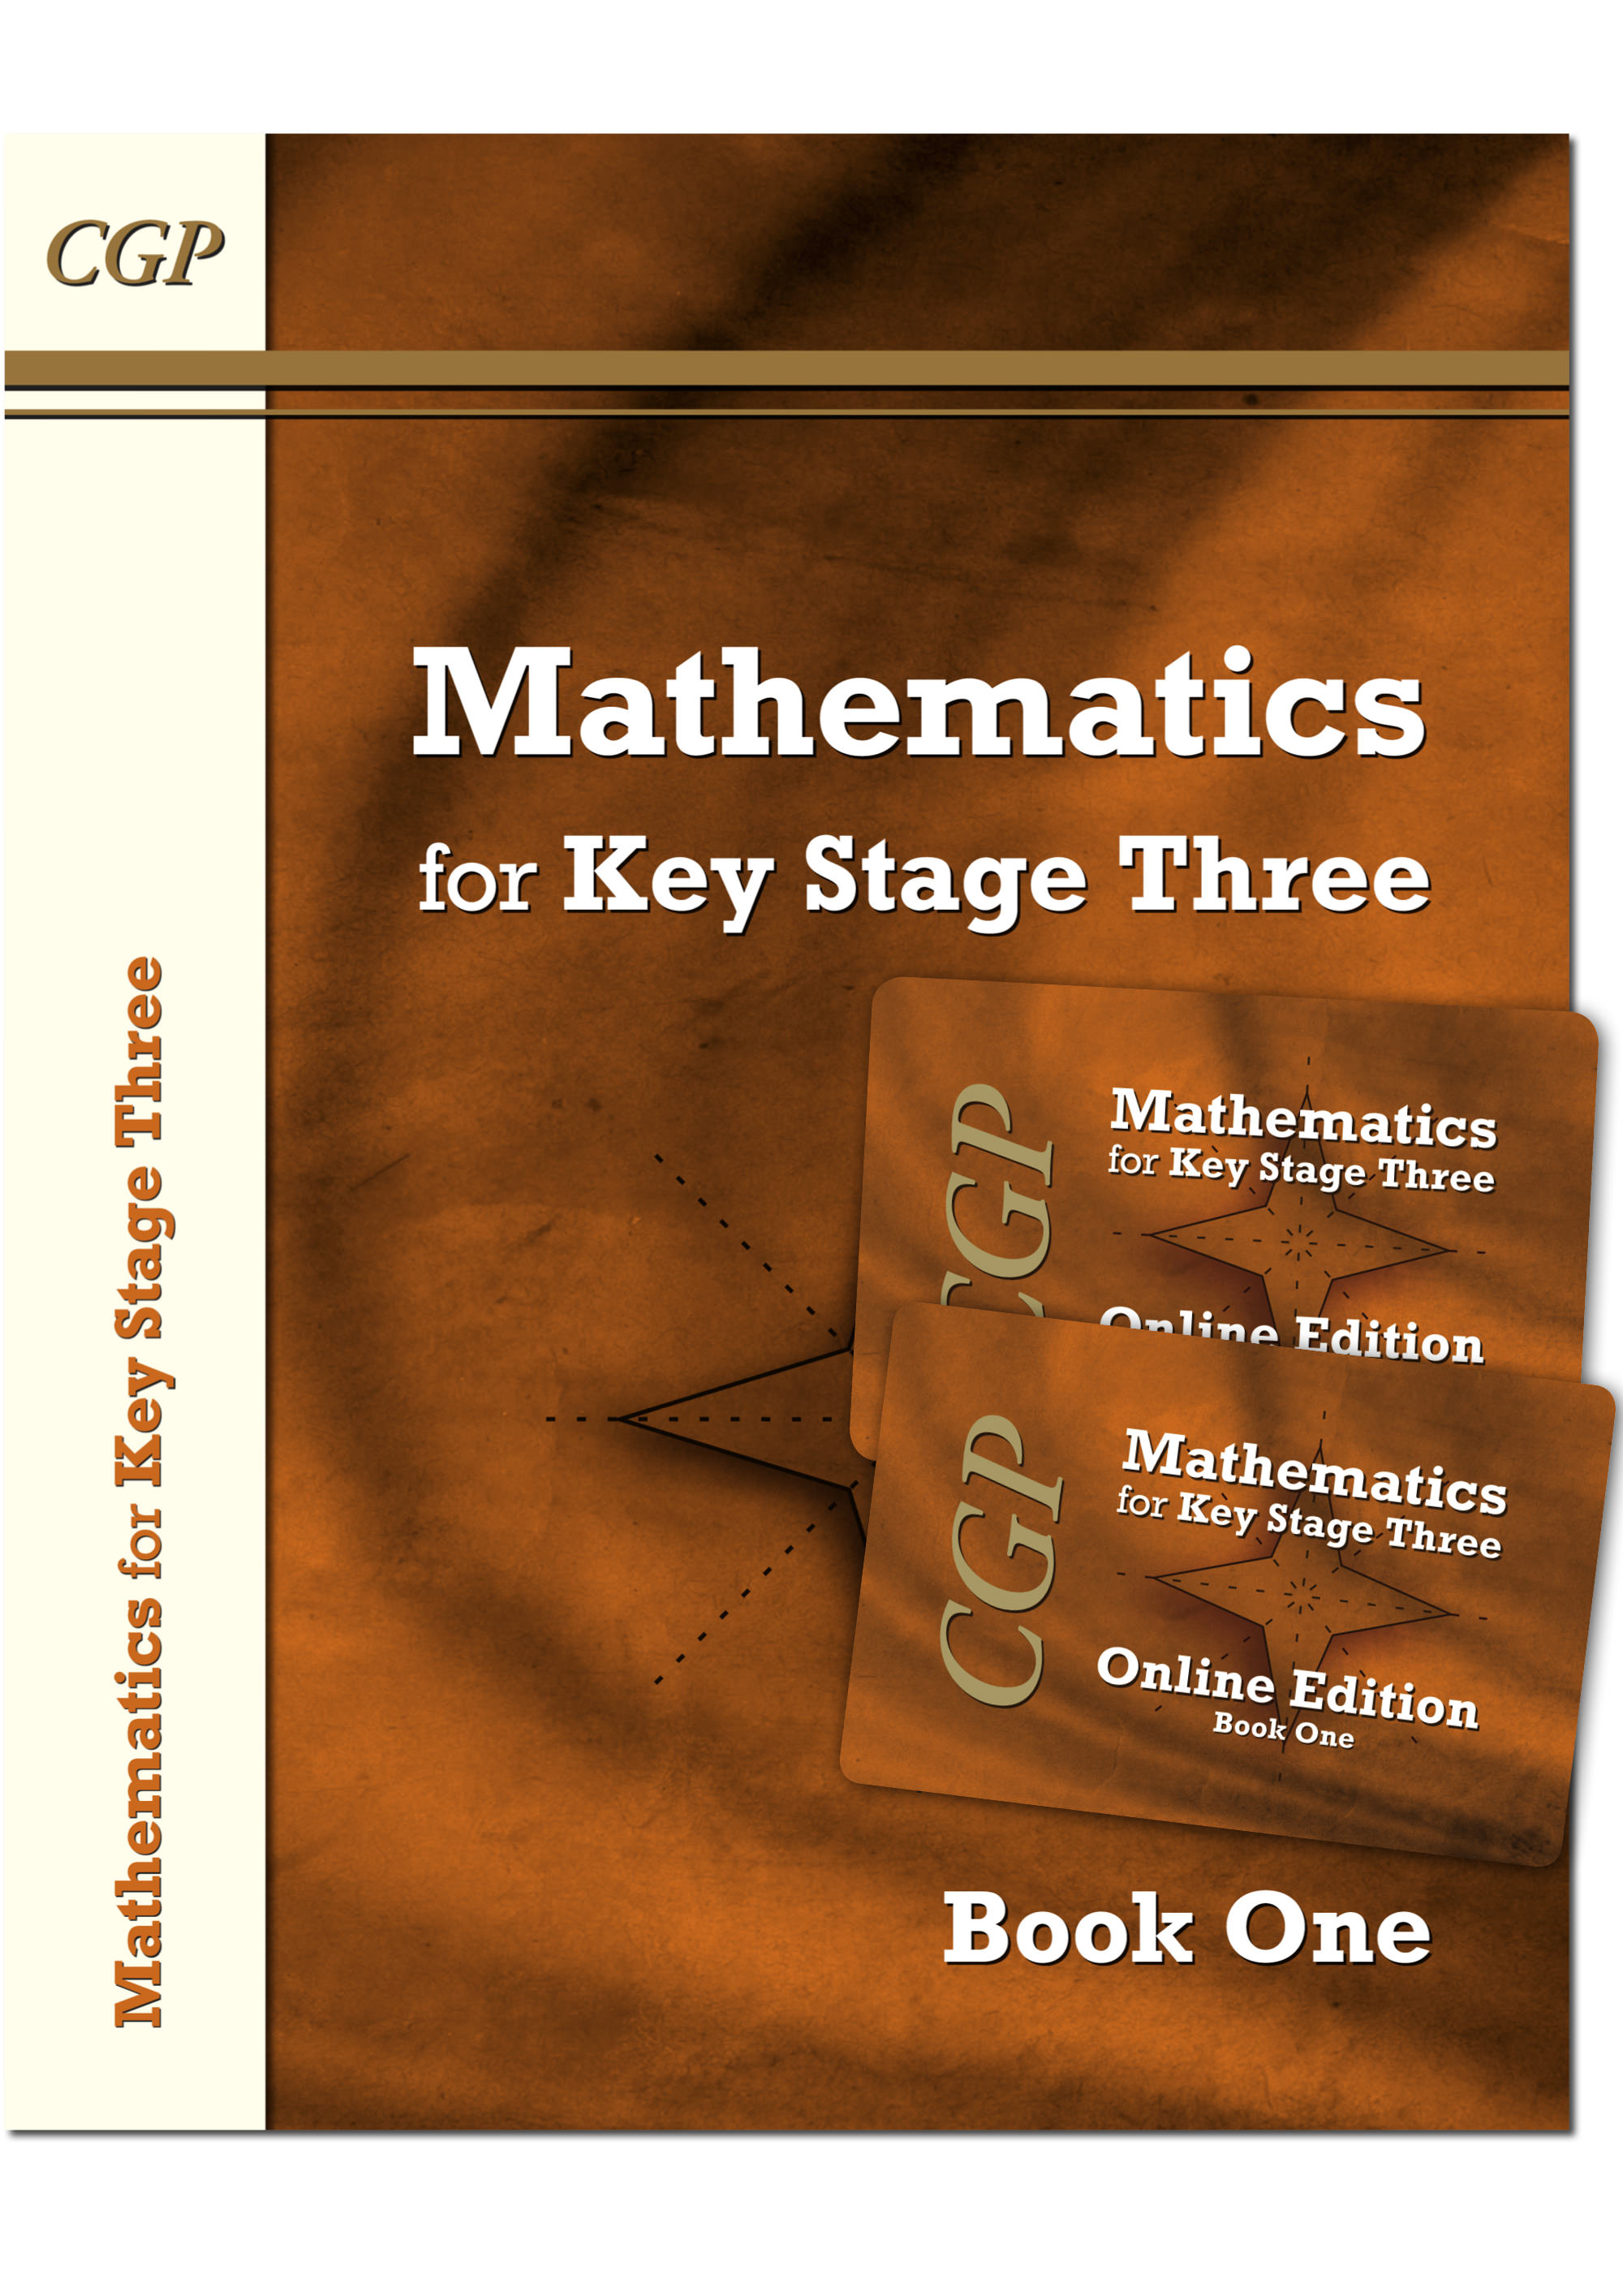 M1NNB31 - KS3 Maths Textbook 1 plus two Online Editions (without answers)